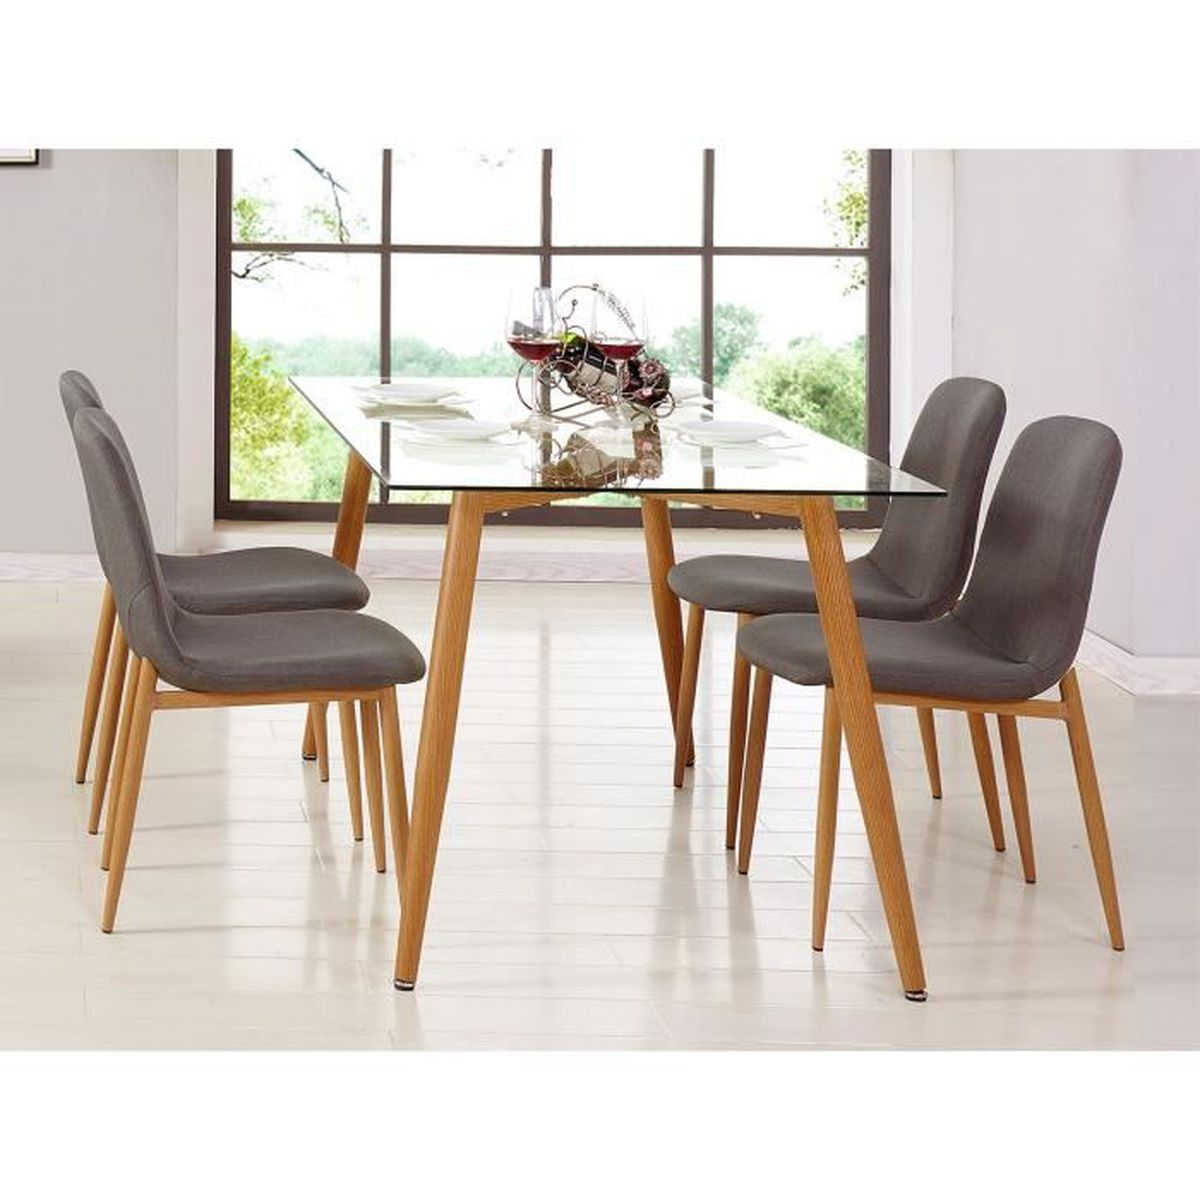 table en verre 4 chaises scandinave nordi achat vente table a manger complet table en. Black Bedroom Furniture Sets. Home Design Ideas